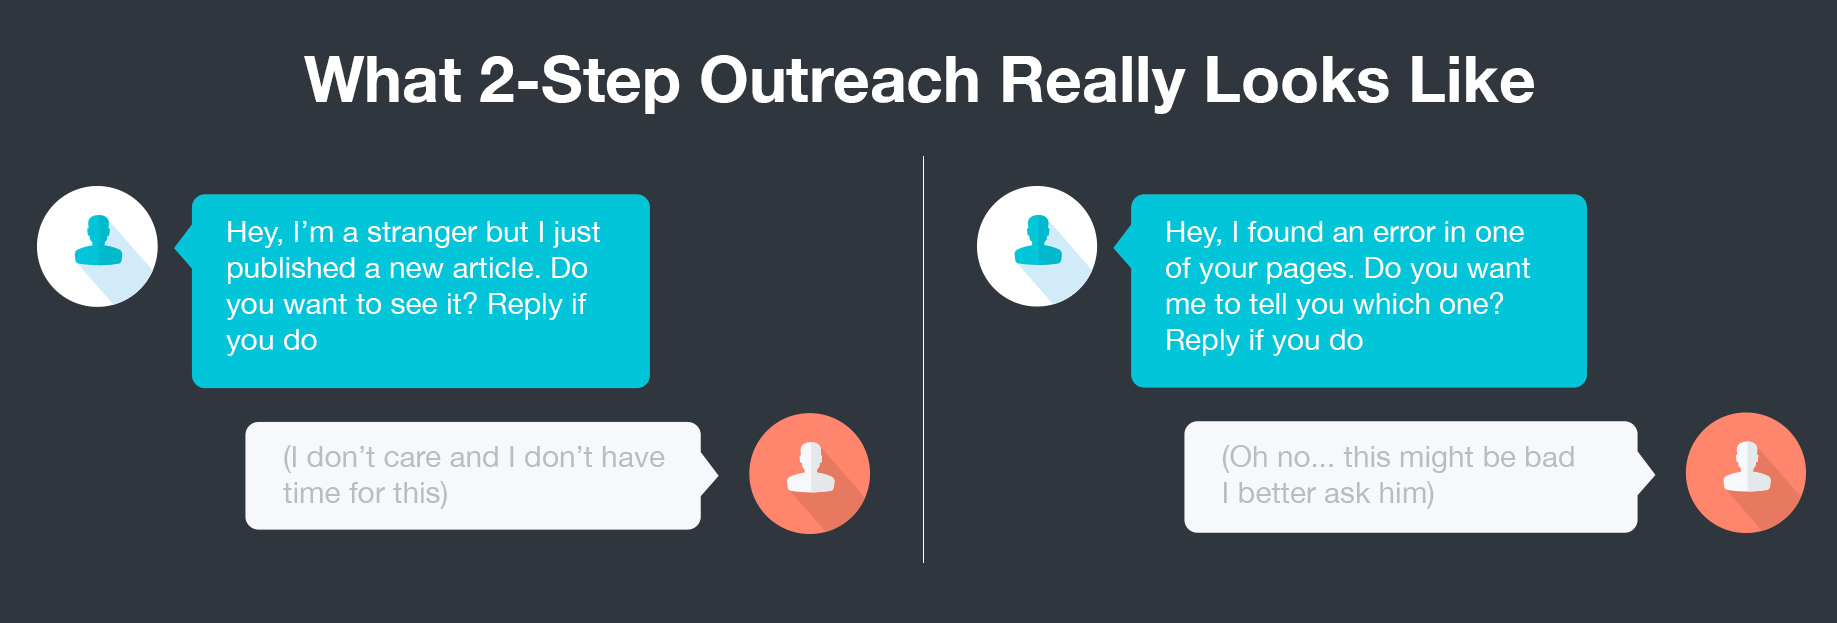 real 2 step outreach